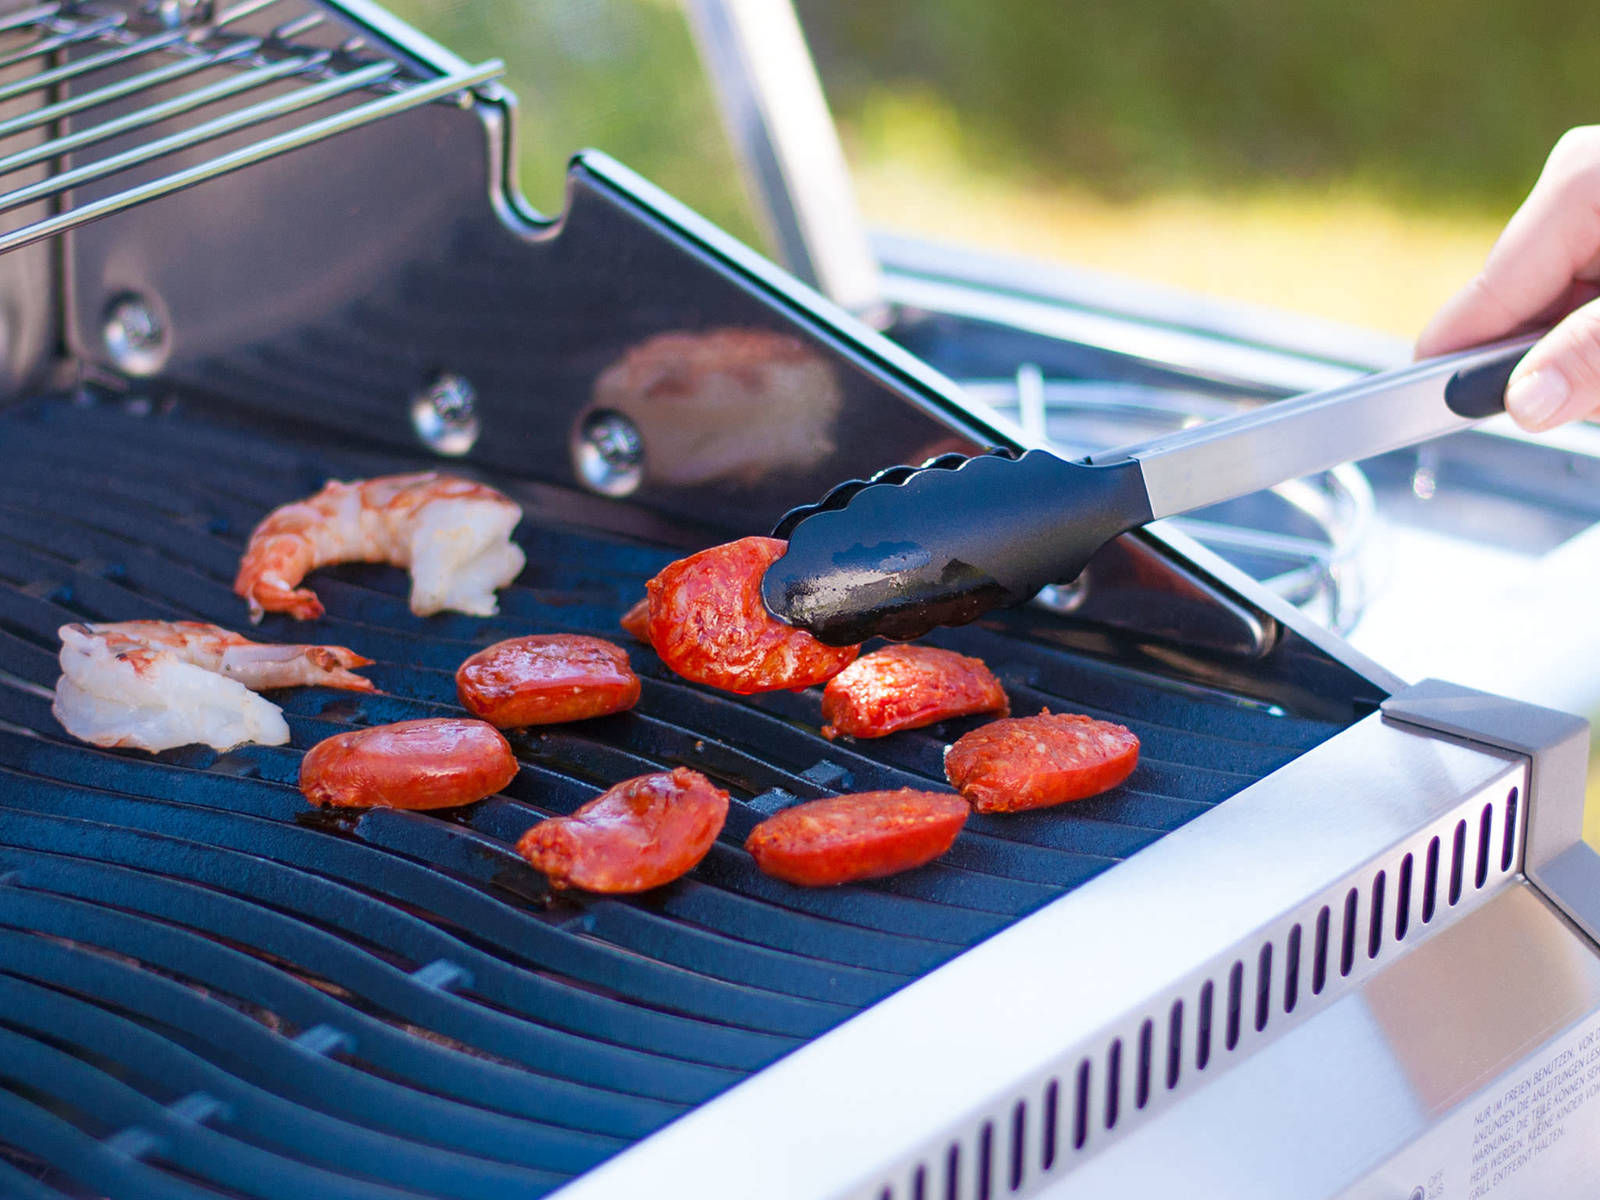 Place bell pepper, chorizo slices and shrimp on grill. Turn approx. after 2 – 3 min. Cover chorizo with some cheese.